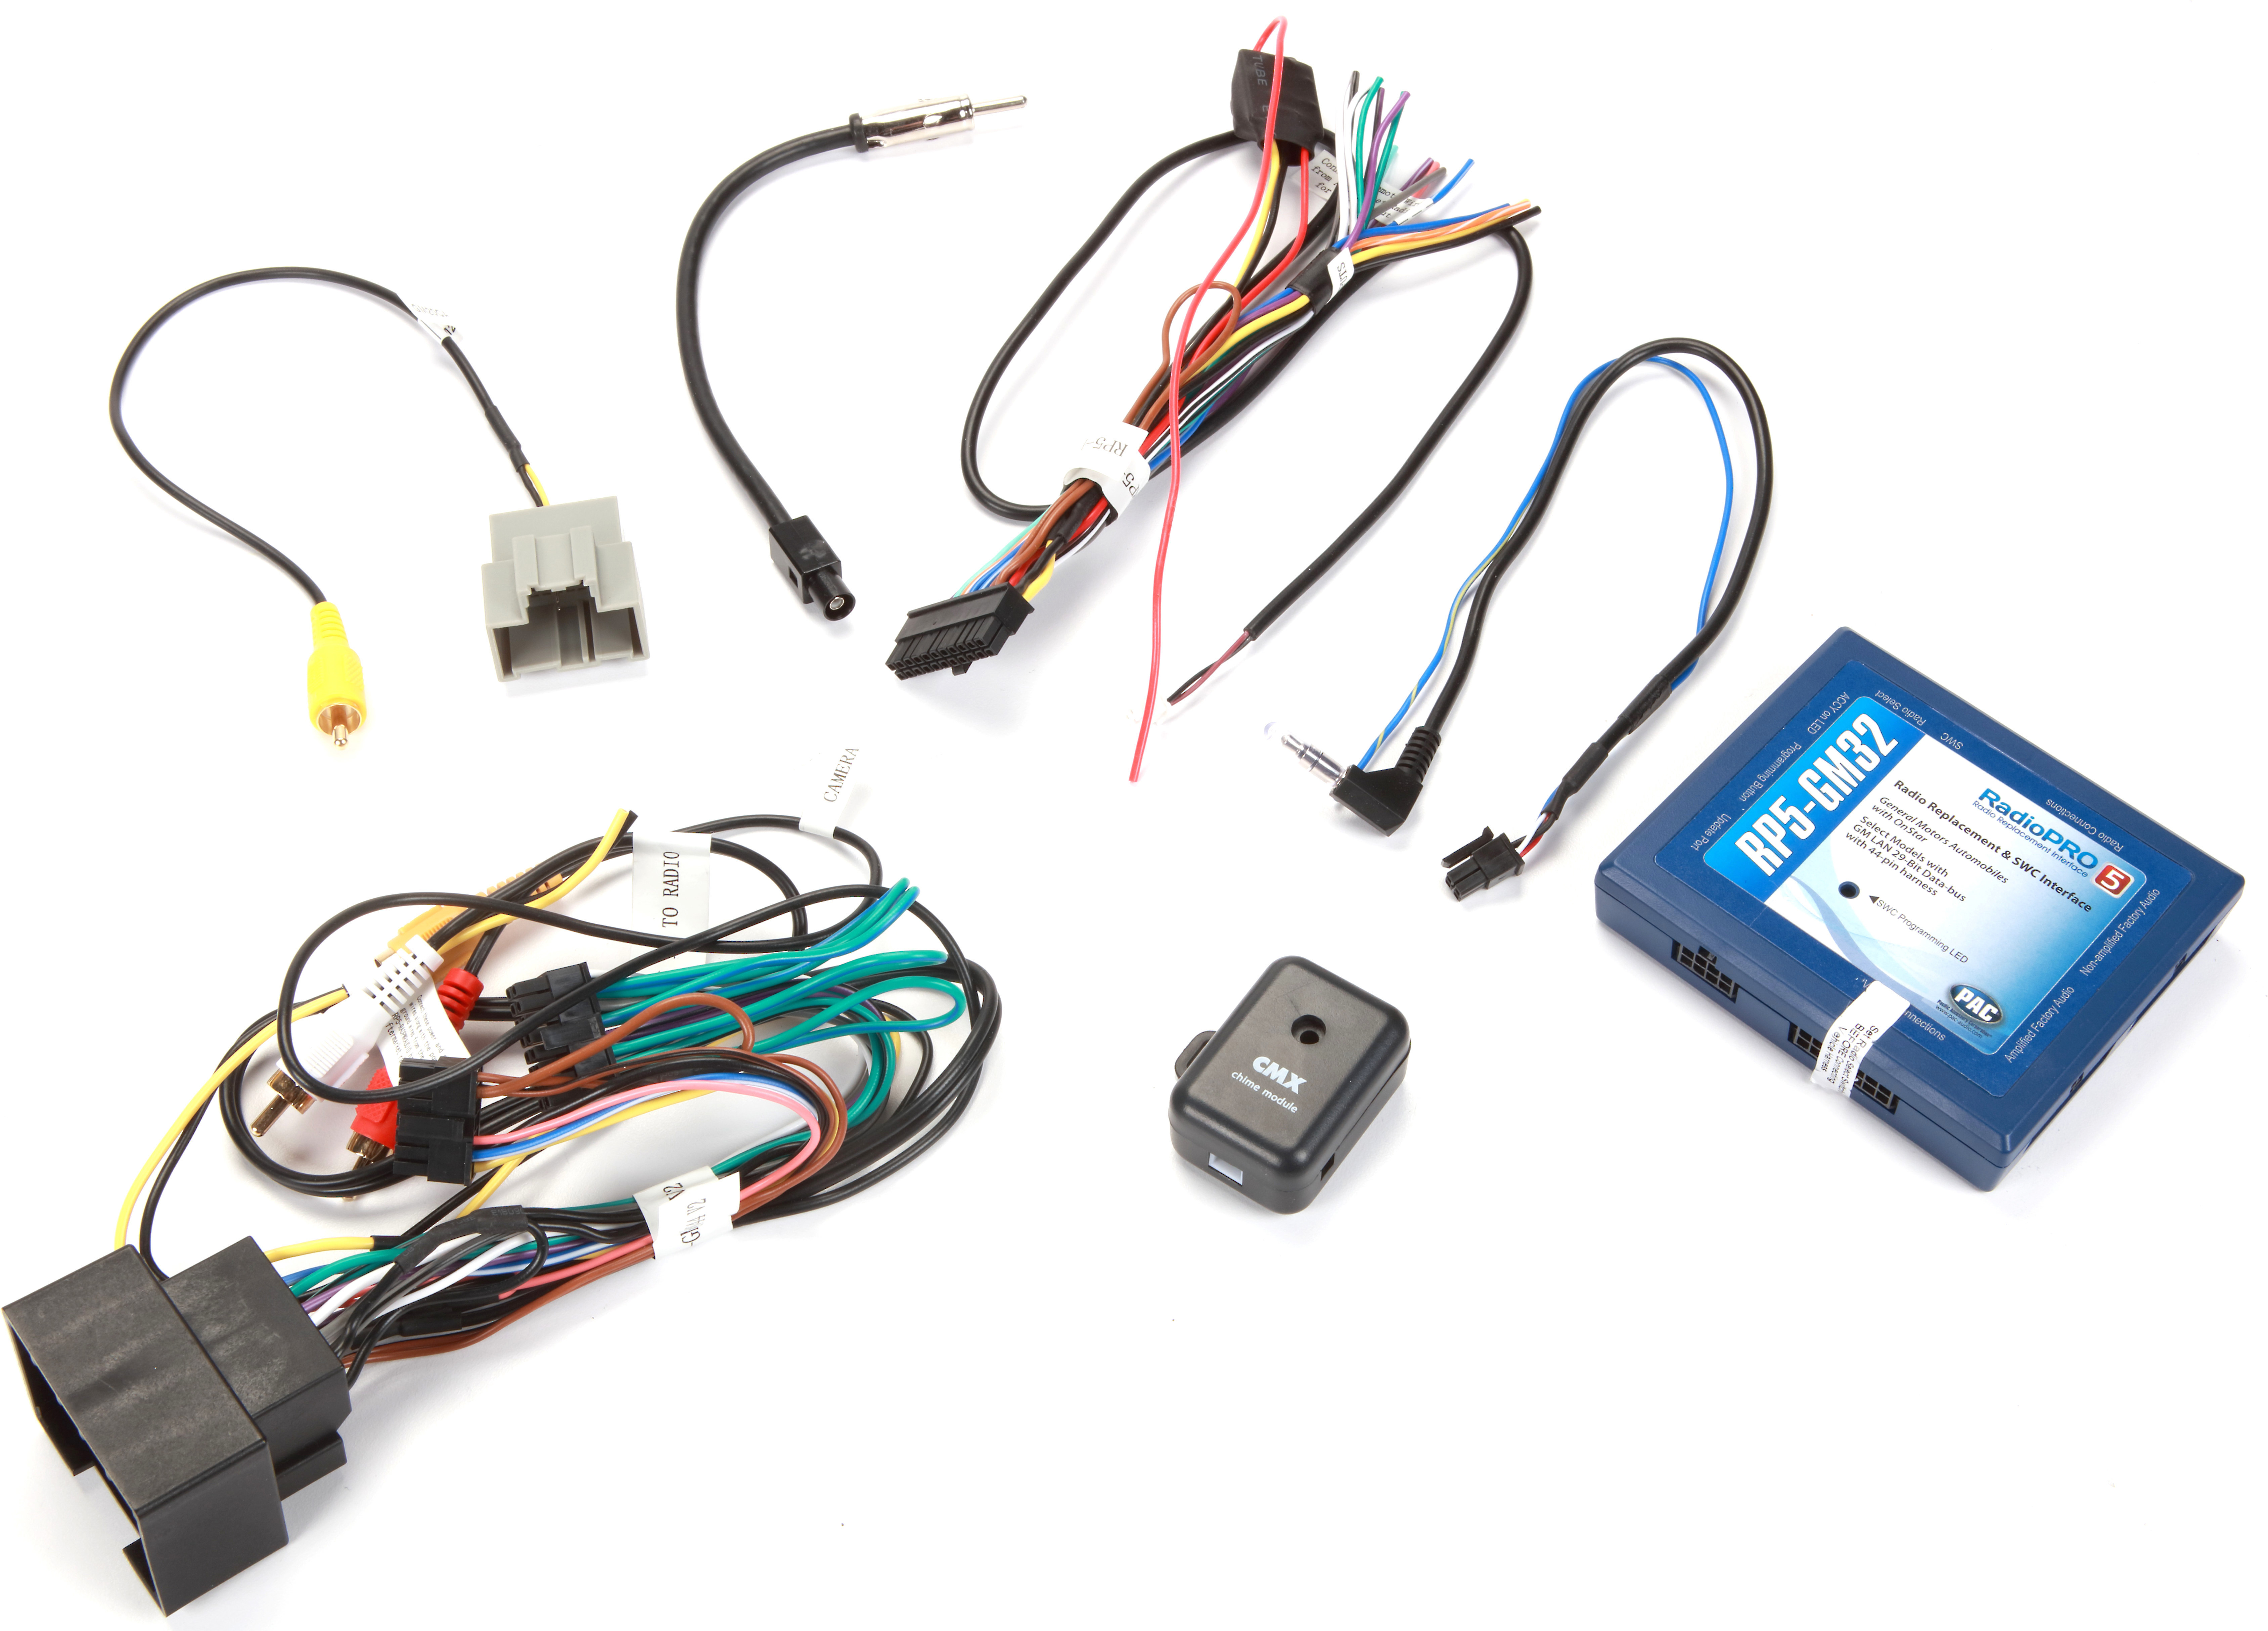 gm radio chime interface wiring diagram na 5031  audio the onstar audio is amplified using the factory  audio the onstar audio is amplified